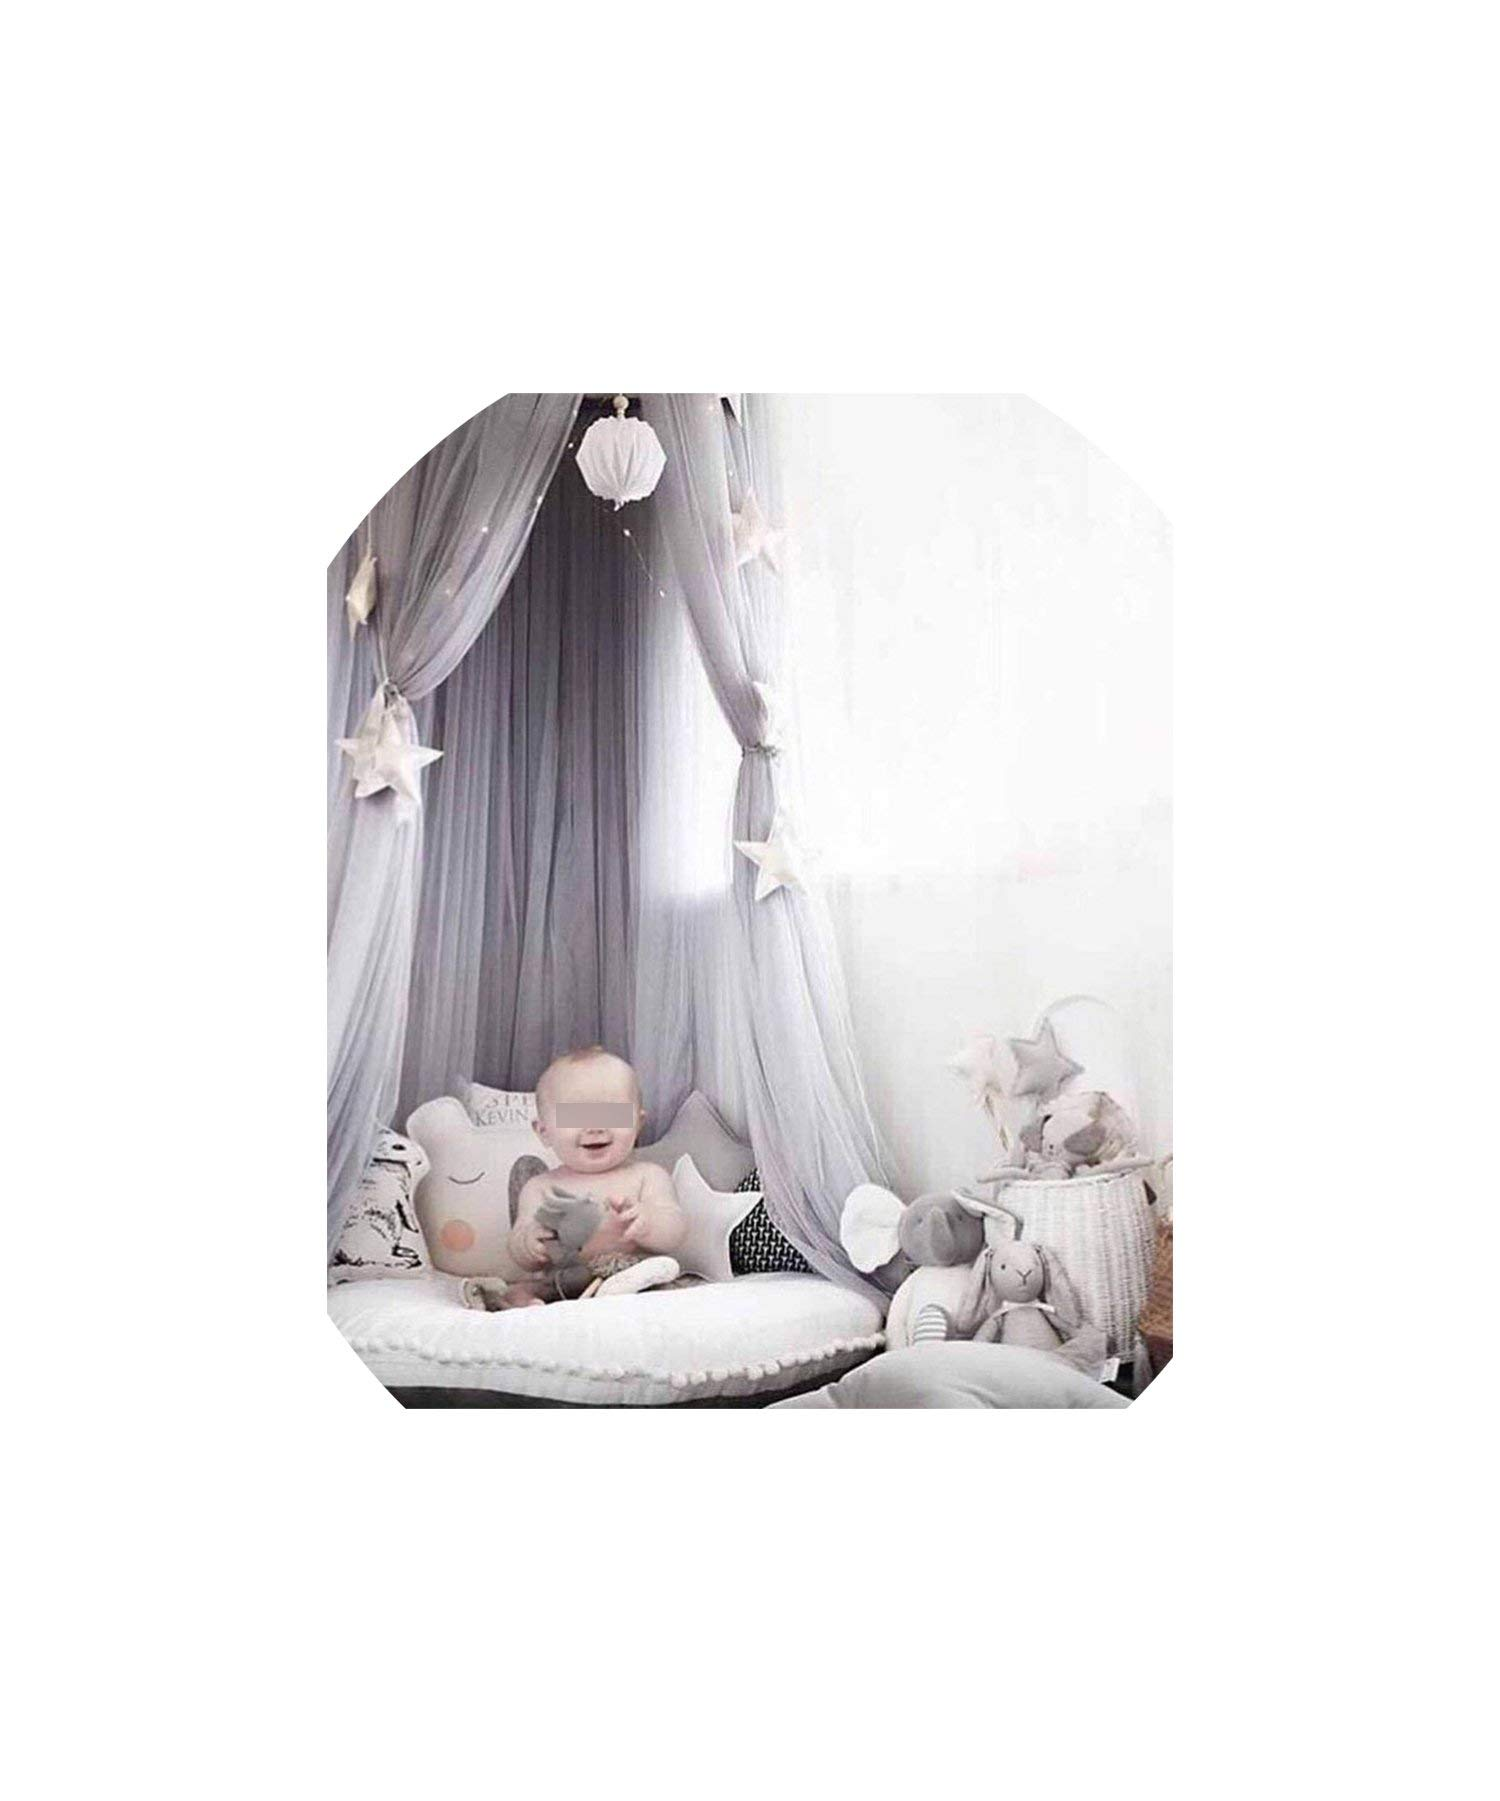 Kid Bedding Mosquito Net Romantic Round Bed Mosquito Net Bed Cover Pink Hung Dome Bed Canopy for Kids Bedroom Nursery,Gray by special shine-shop mosquito net